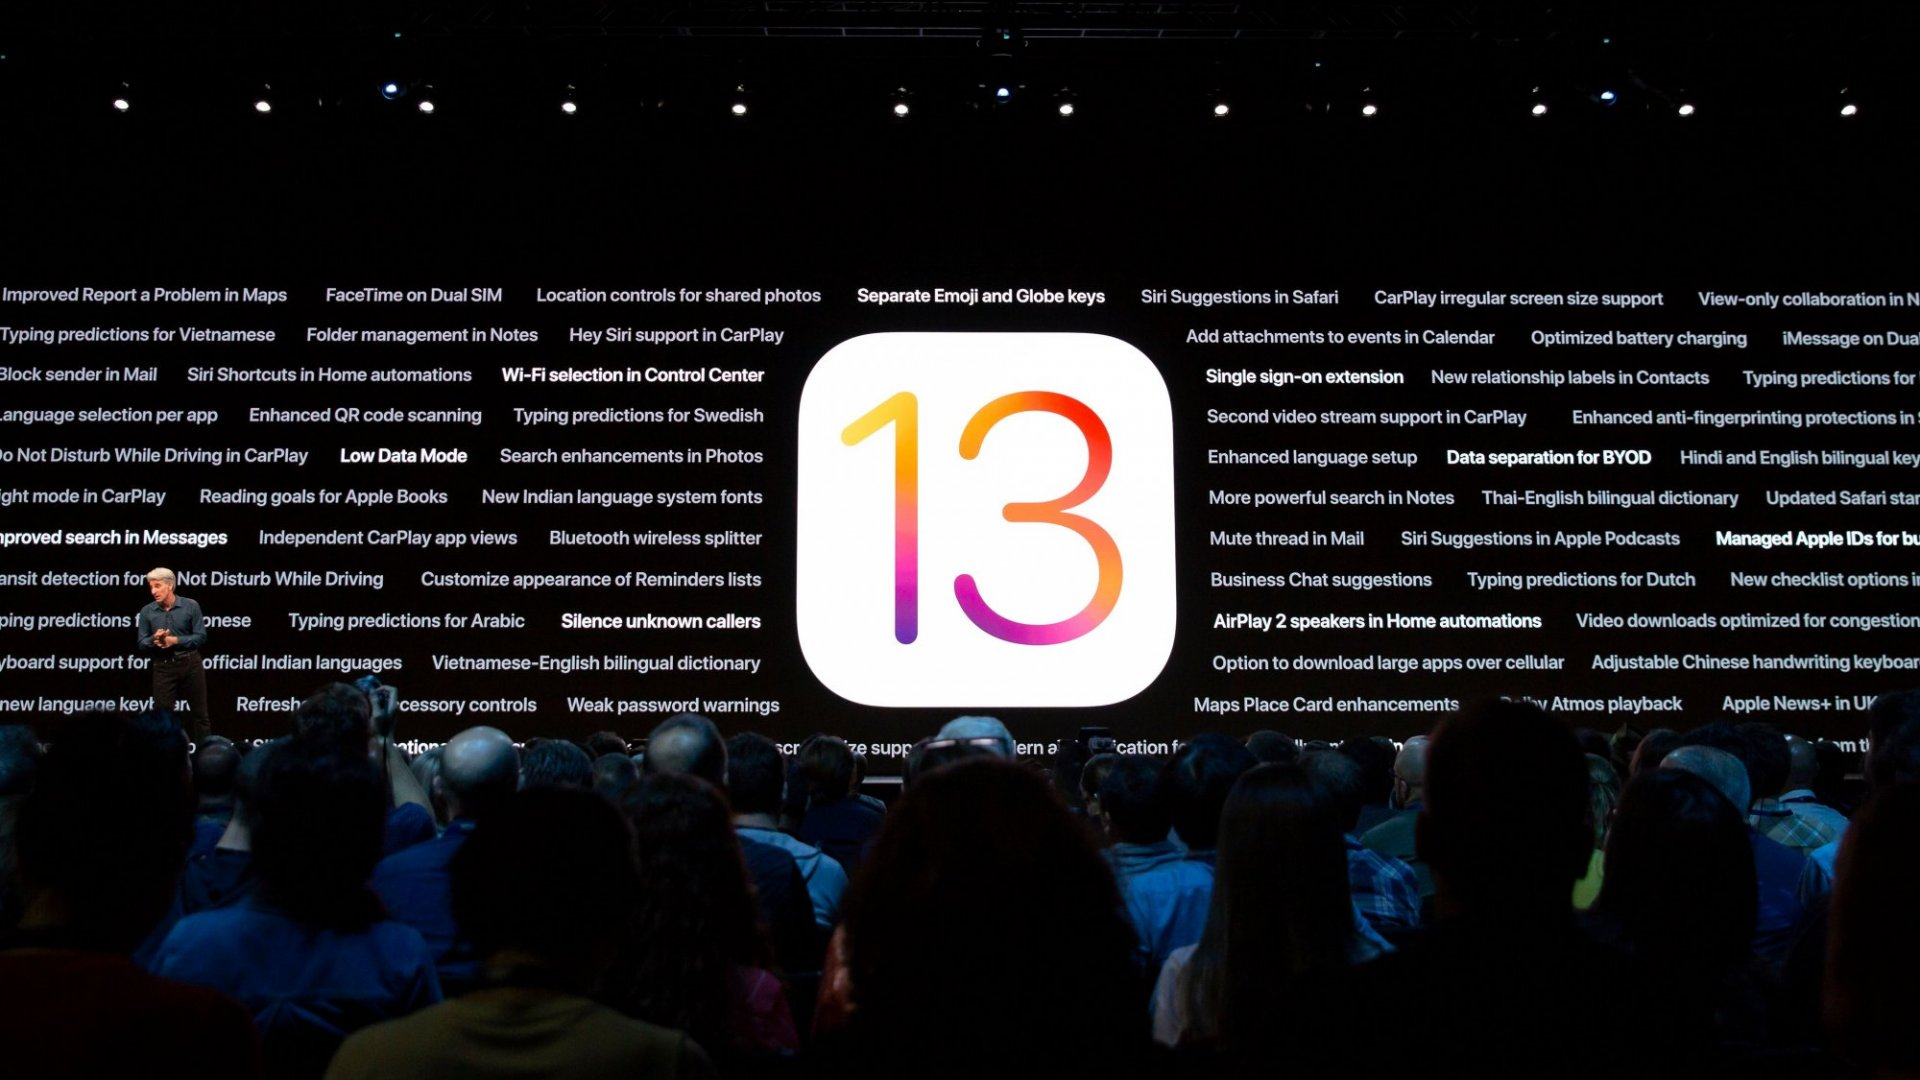 This 1Feature of iOS 13 Tells You Everything You Need to Know About Why Apple Is Different From Google and Facebook